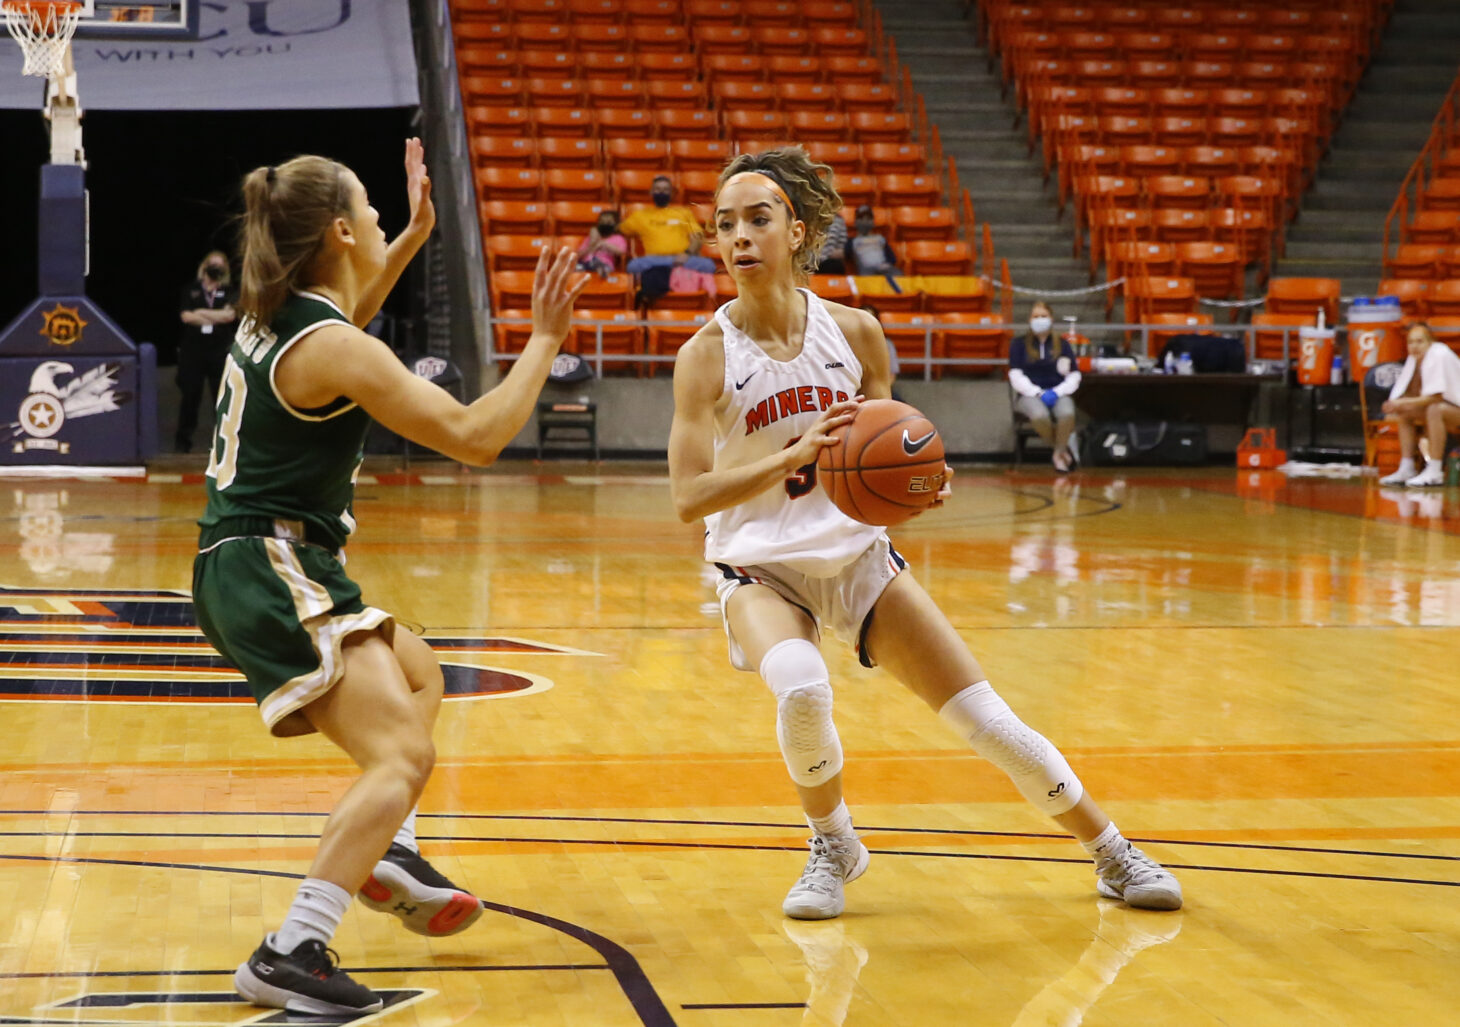 UTEP So. Guard Katia Gallegos  |  Photo by Ruben R. Ramirez/UTEP Athletics